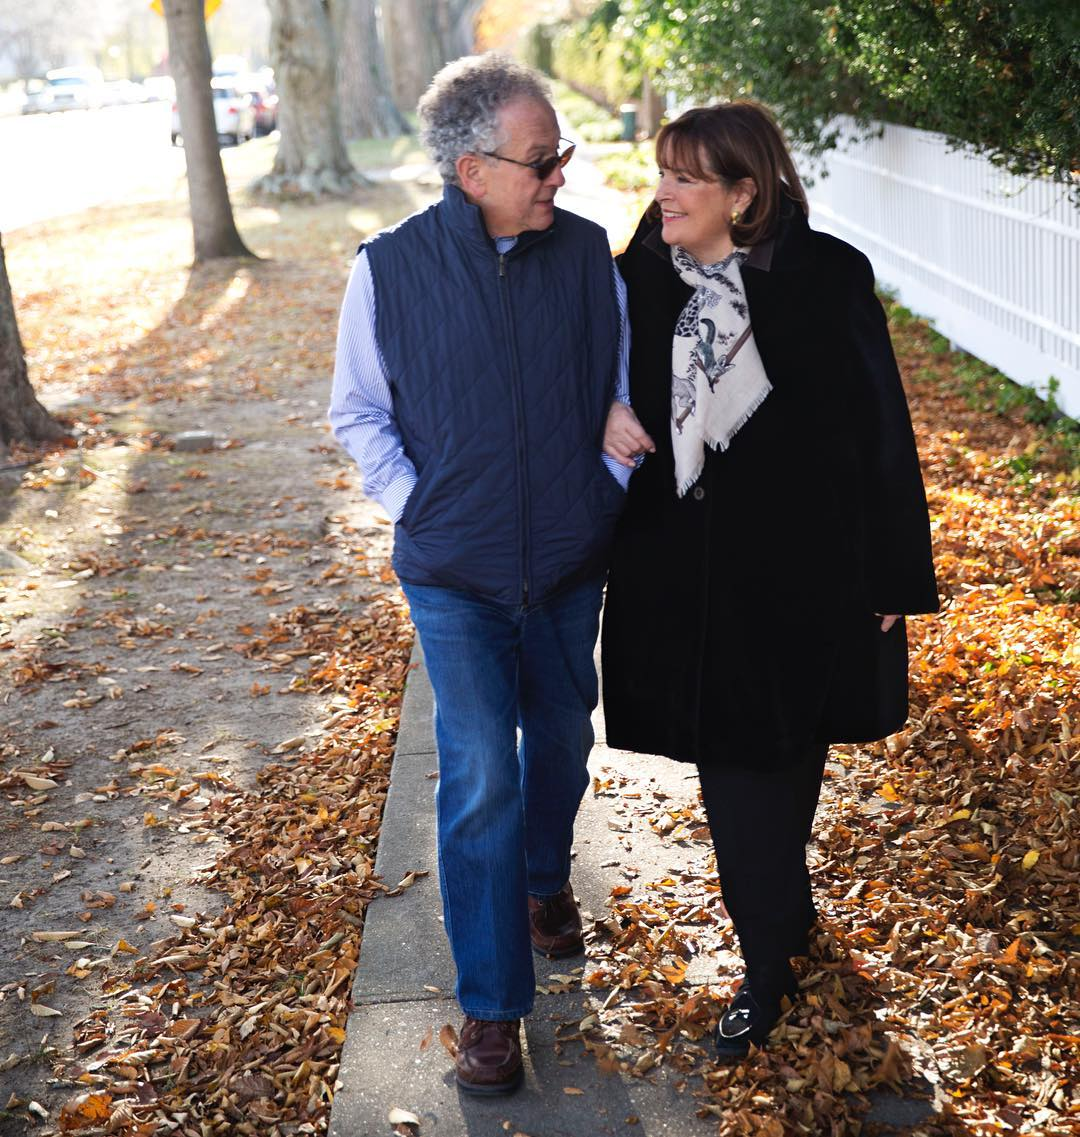 ina garten & jeffrey garten's love story - how the barefoot